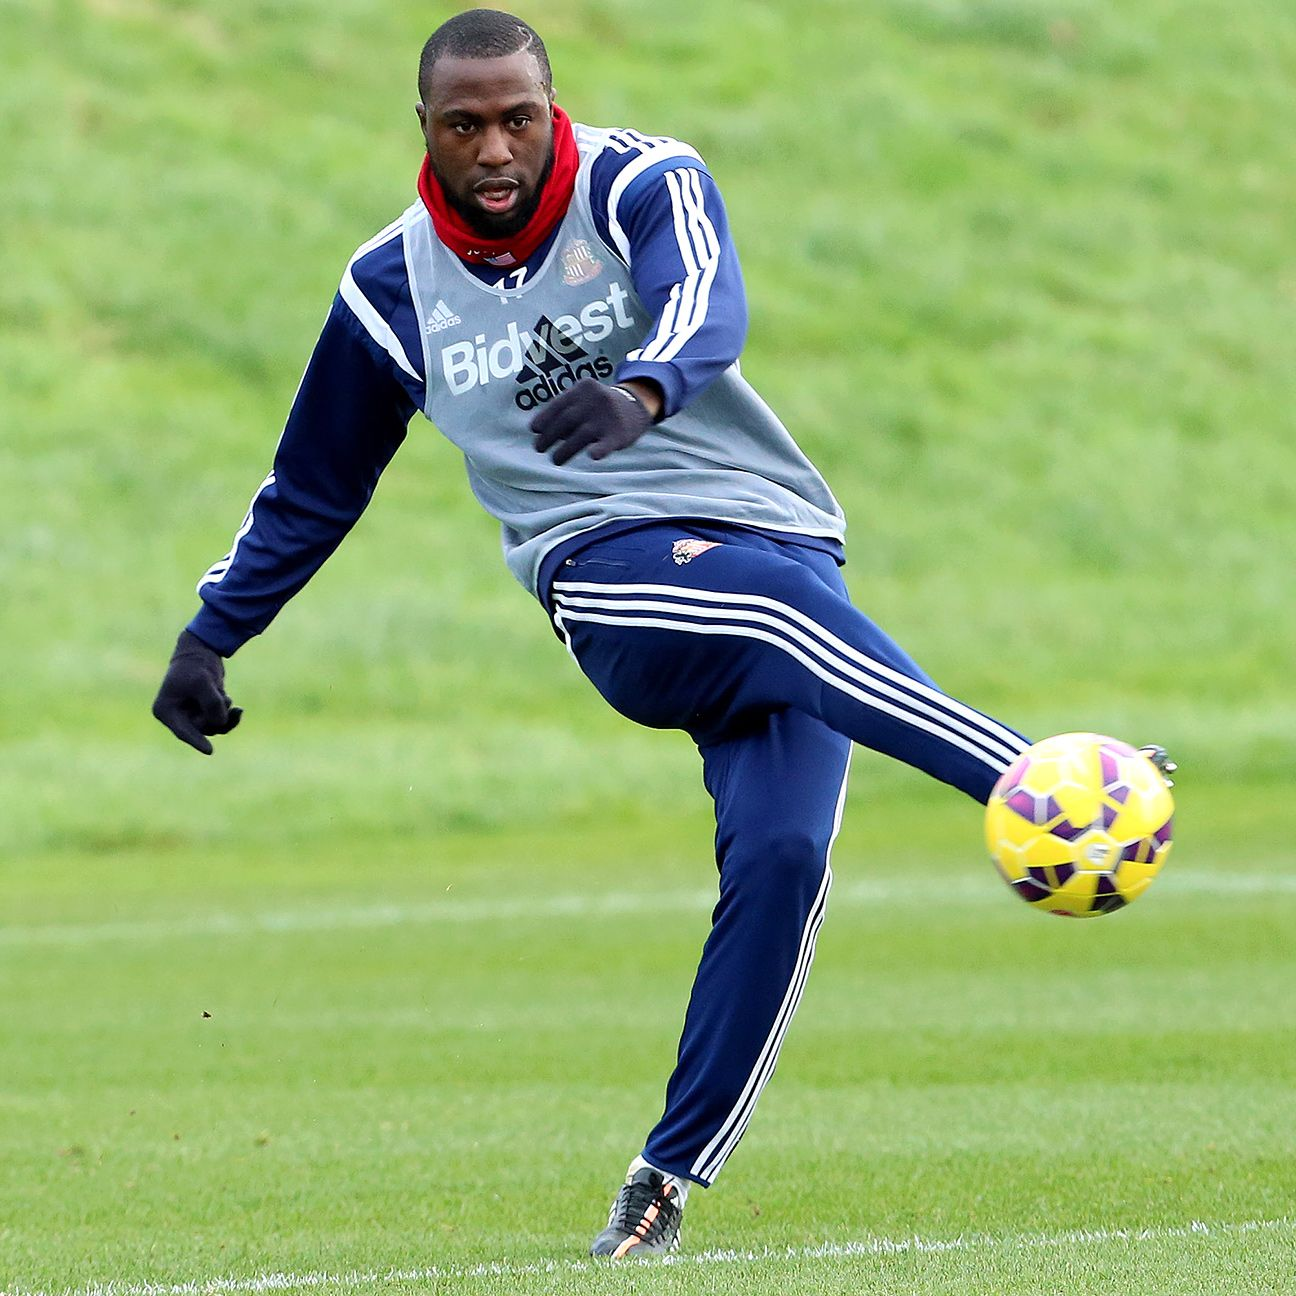 Jozy Altidore last played in MLS in 2008 with the New York Red Bulls.